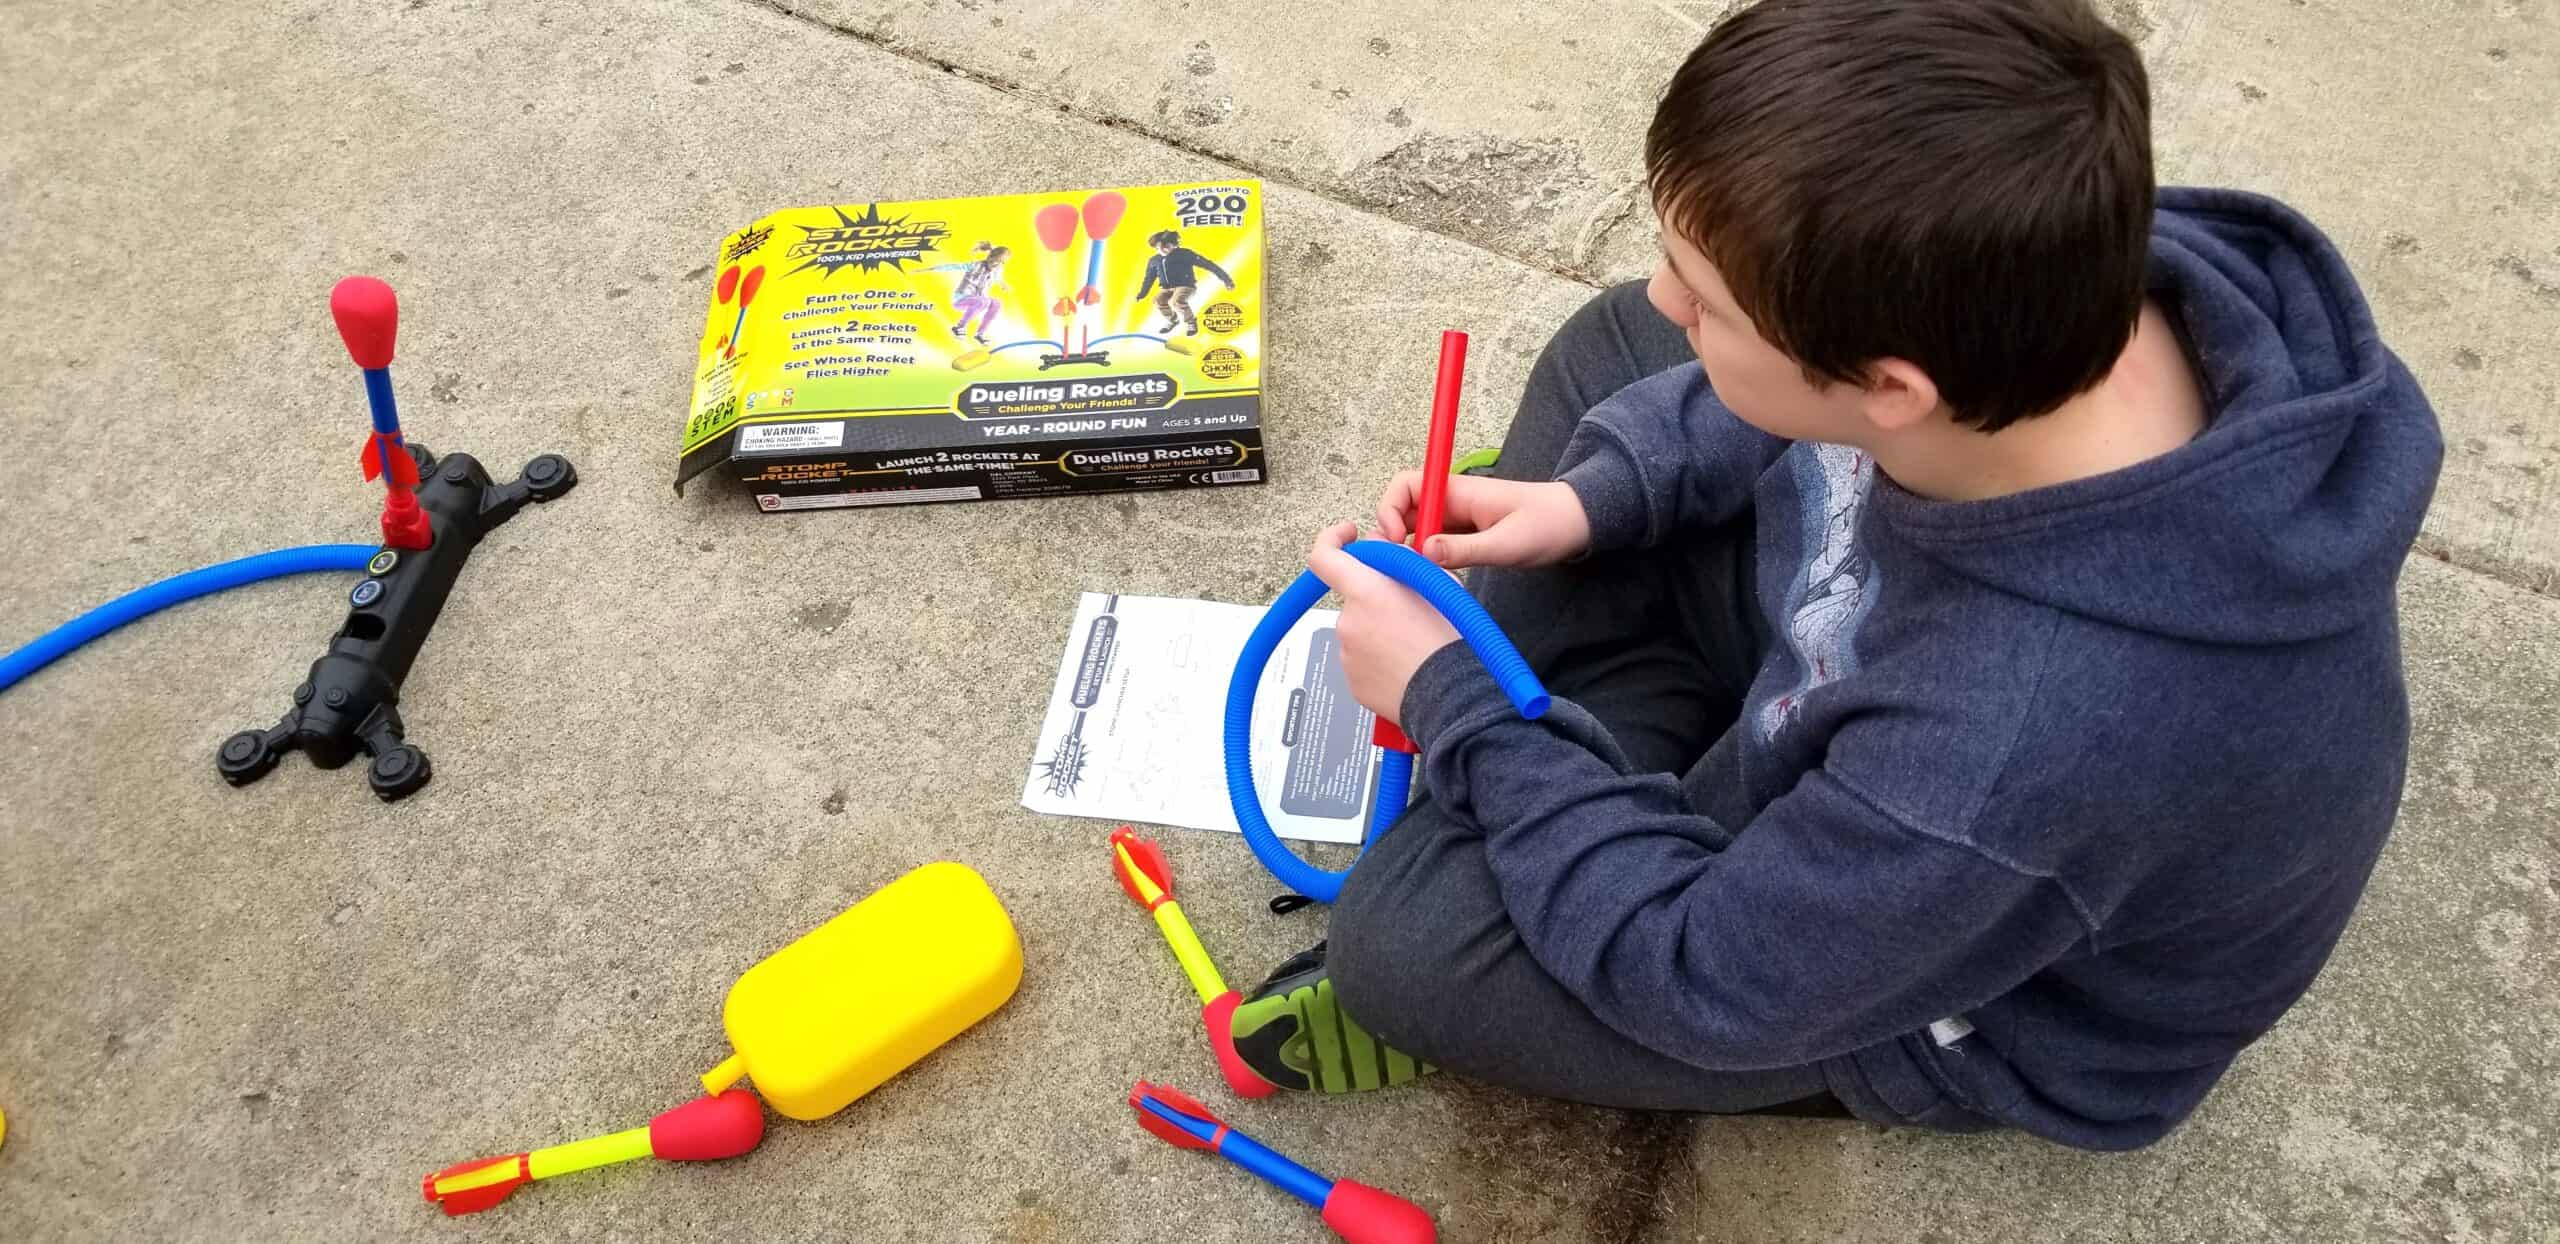 boy putting together stomp rockets kit